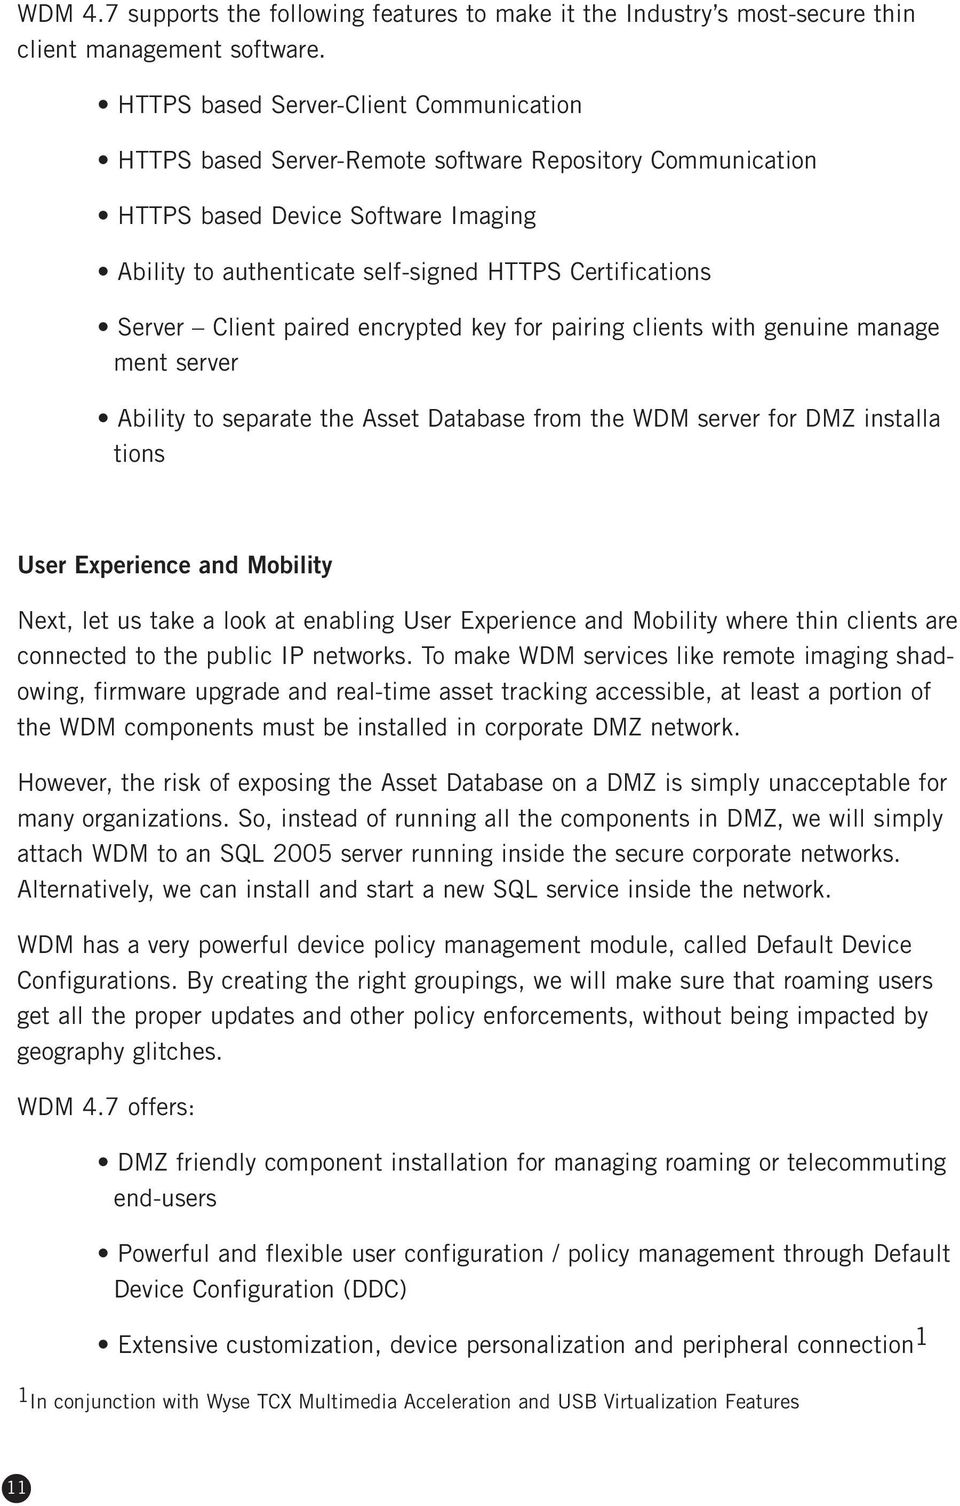 Deploying and Managing Thin Clients  A white paper by Wyse